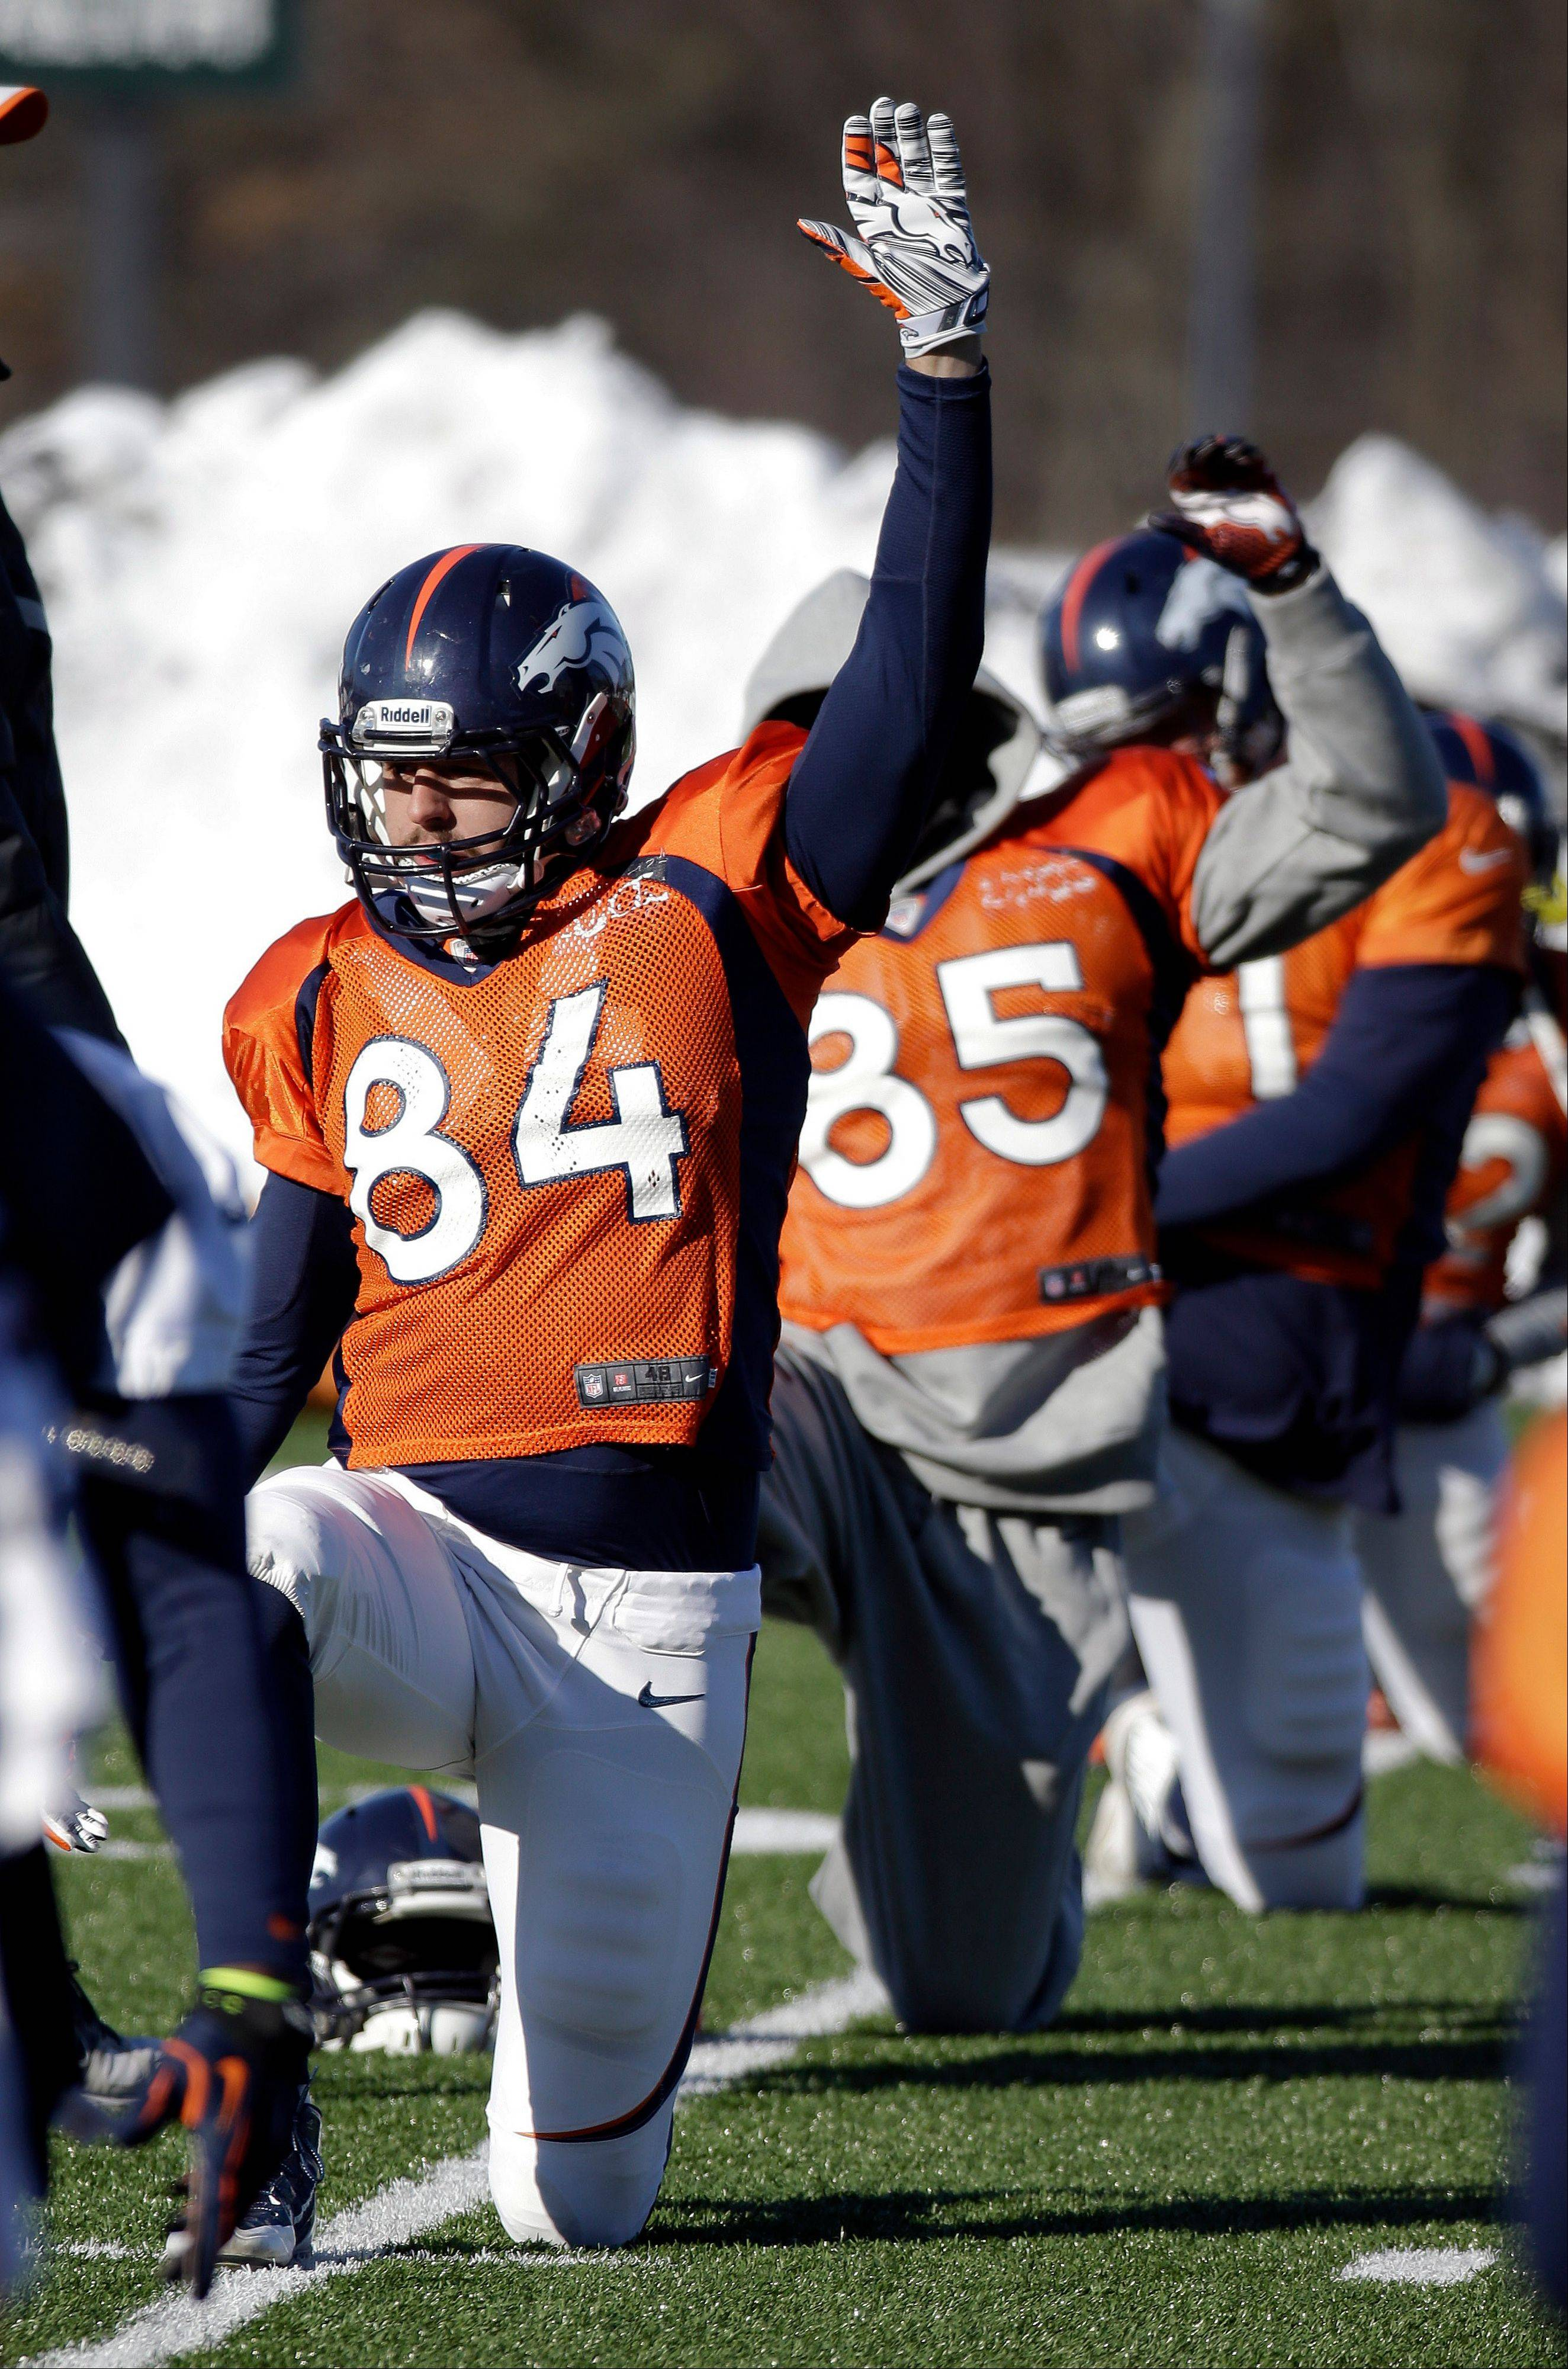 Denver Broncos tight end Jacob Tamme (84) stretches during practice Wednesday, Jan. 29, 2014, in Florham Park, N.J. The Broncos are scheduled to play the Seattle Seahawks in the NFL Super Bowl XLVIII football game Sunday, Feb. 2, in East Rutherford, N.J.